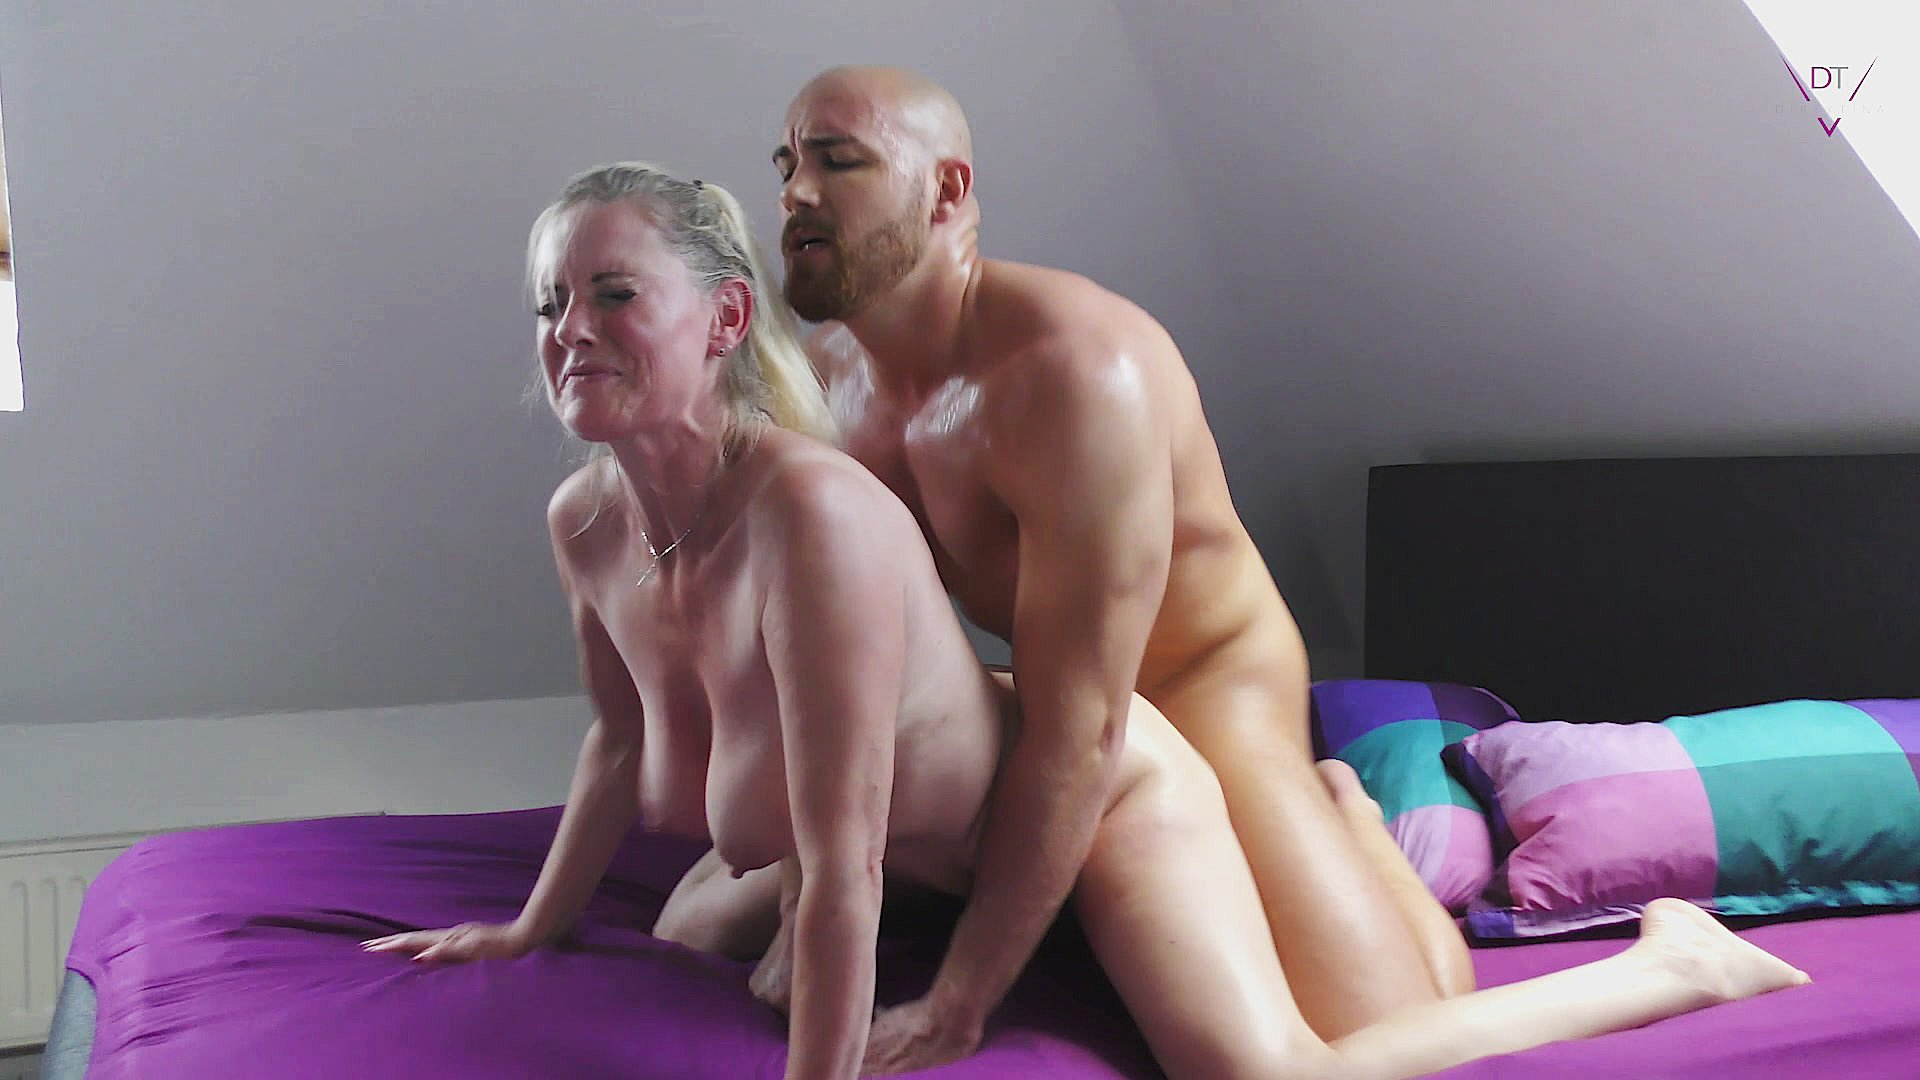 Big Fat Dick Images great fuck with mr big fat dick by dirty tina   xhamster premium